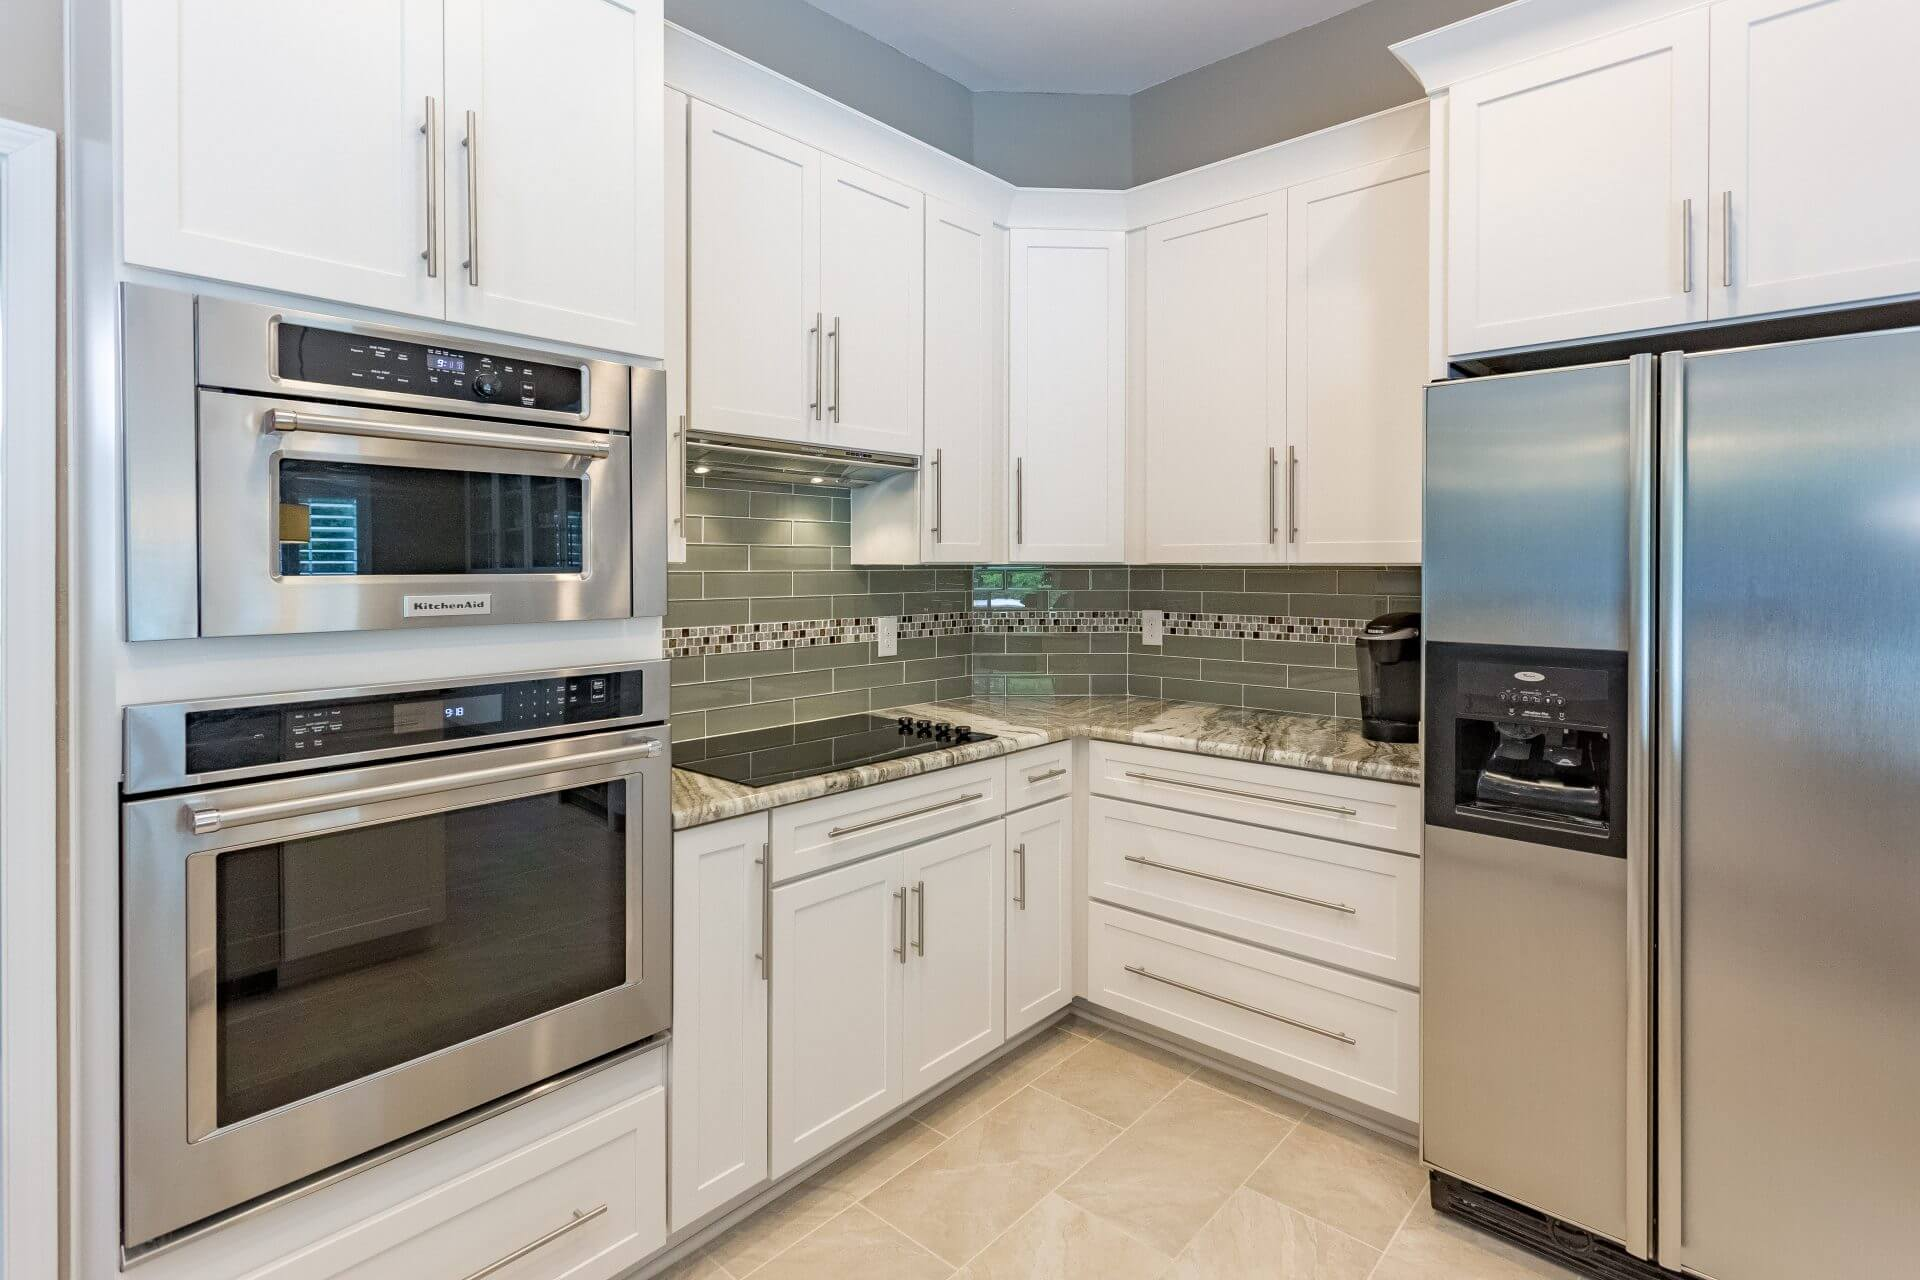 Services include installation of White Shaker cabinets with crown molding, glass tile backsplash and stainless steel appliances and hardware.